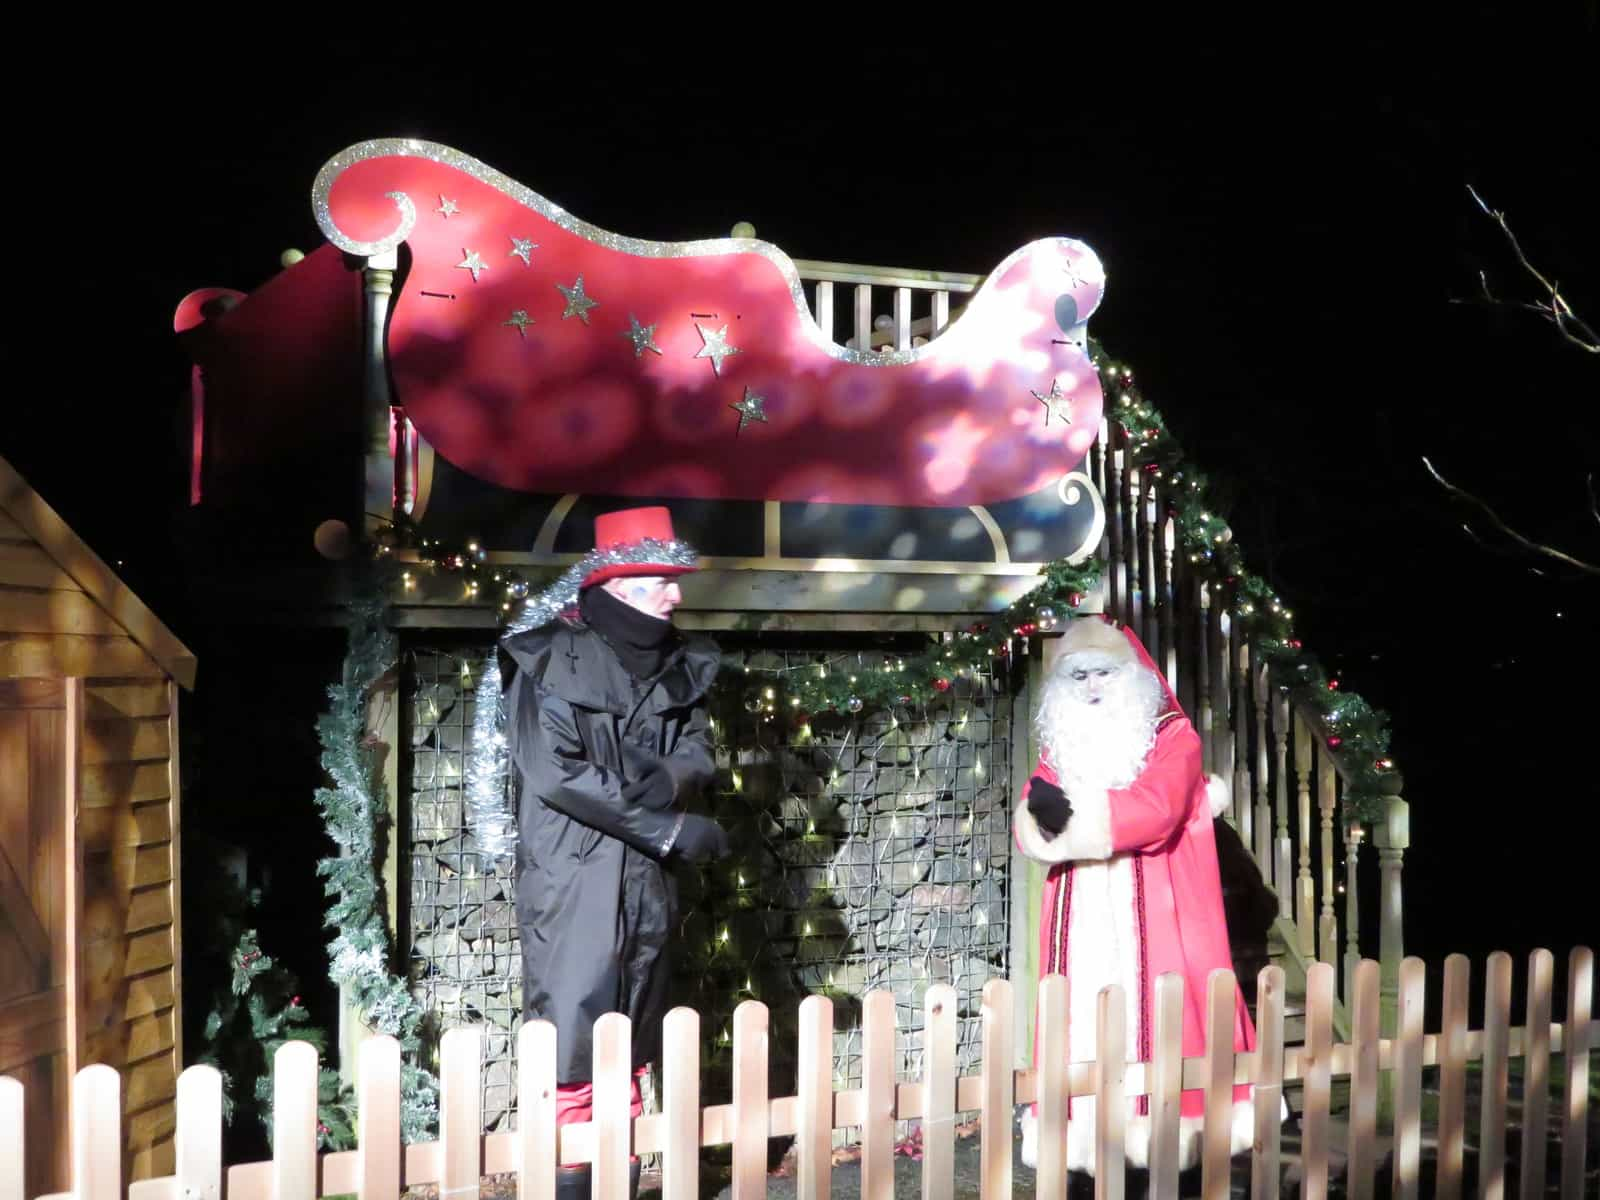 Santa and a helper dressed in black stand beside a sleigh